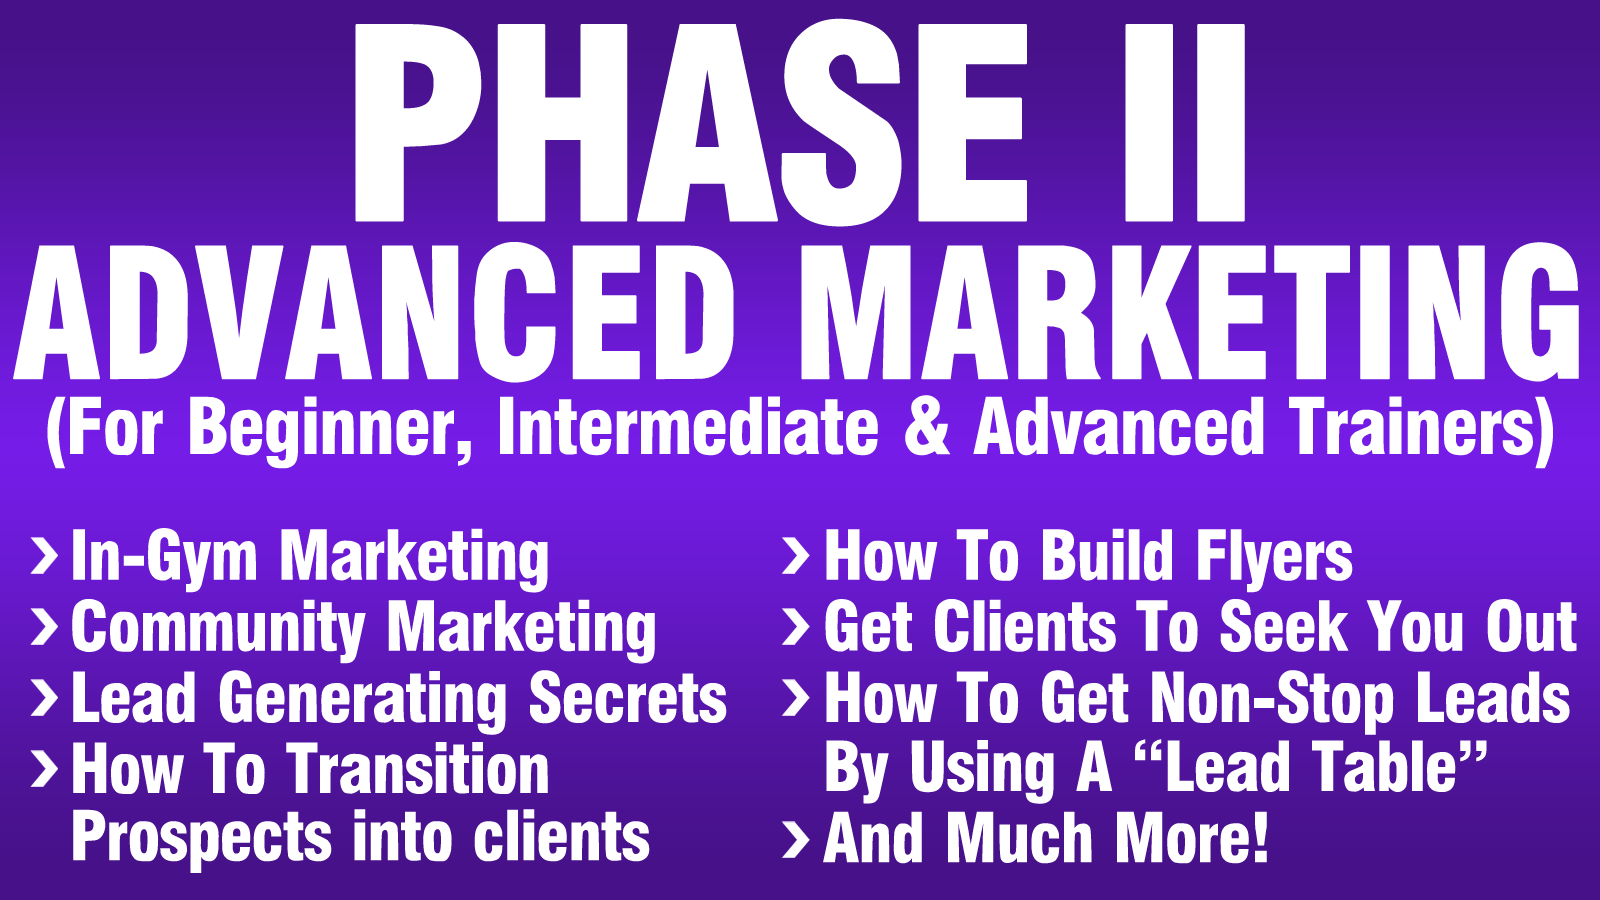 Specialized Course #2: The Marketing Methods To Get Clients & Build Your Income Fast!